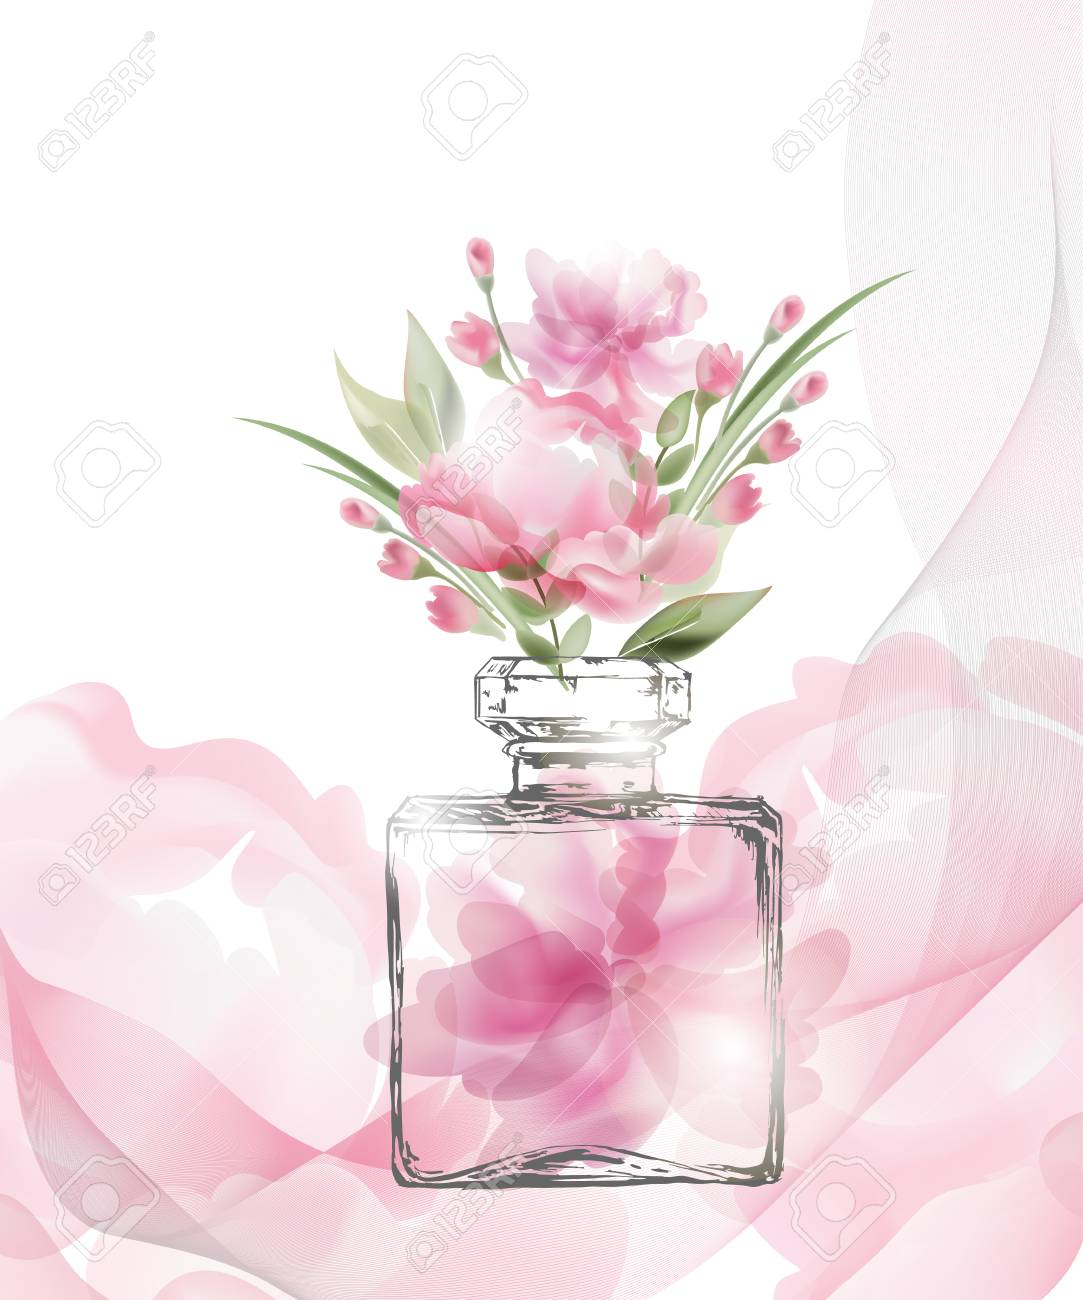 Beautiful perfume bottle with blooming beautiful pink flowers beautiful perfume bottle with blooming beautiful pink flowers beautiful and fashion background template vector mightylinksfo